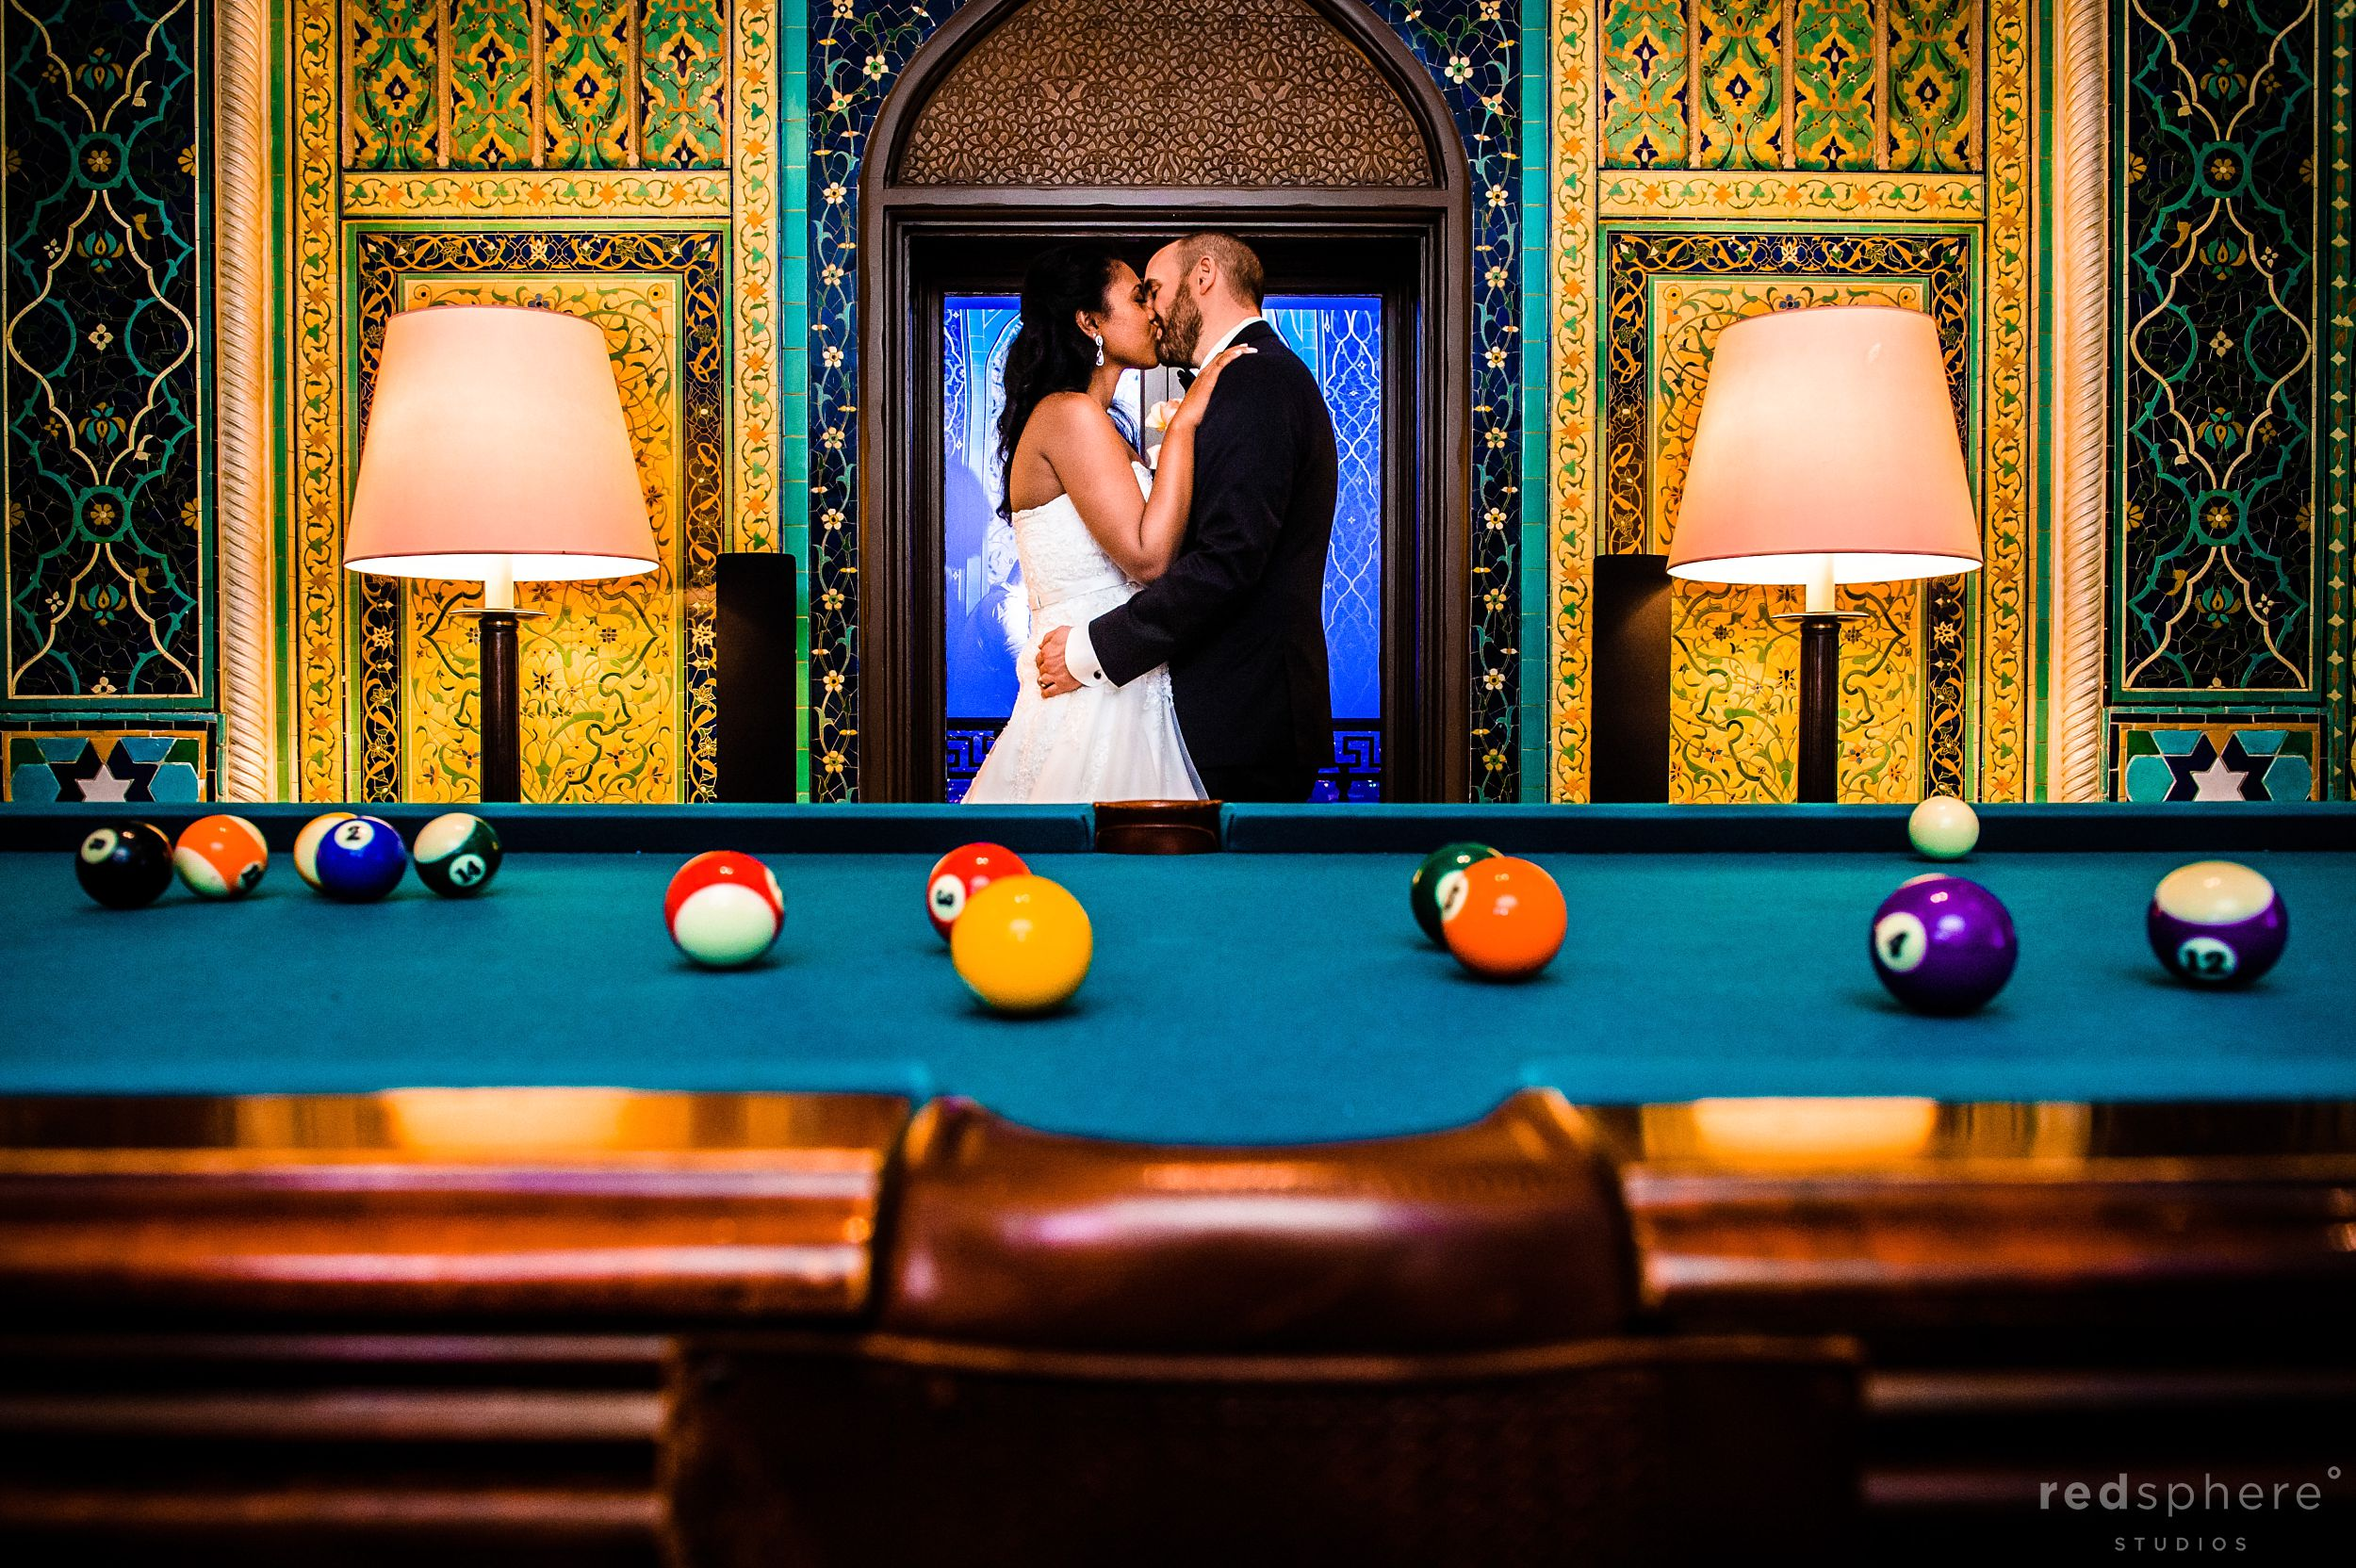 Bride and Groom Share Kiss at Fairmont Hotel, Unique Composition With Pool Table